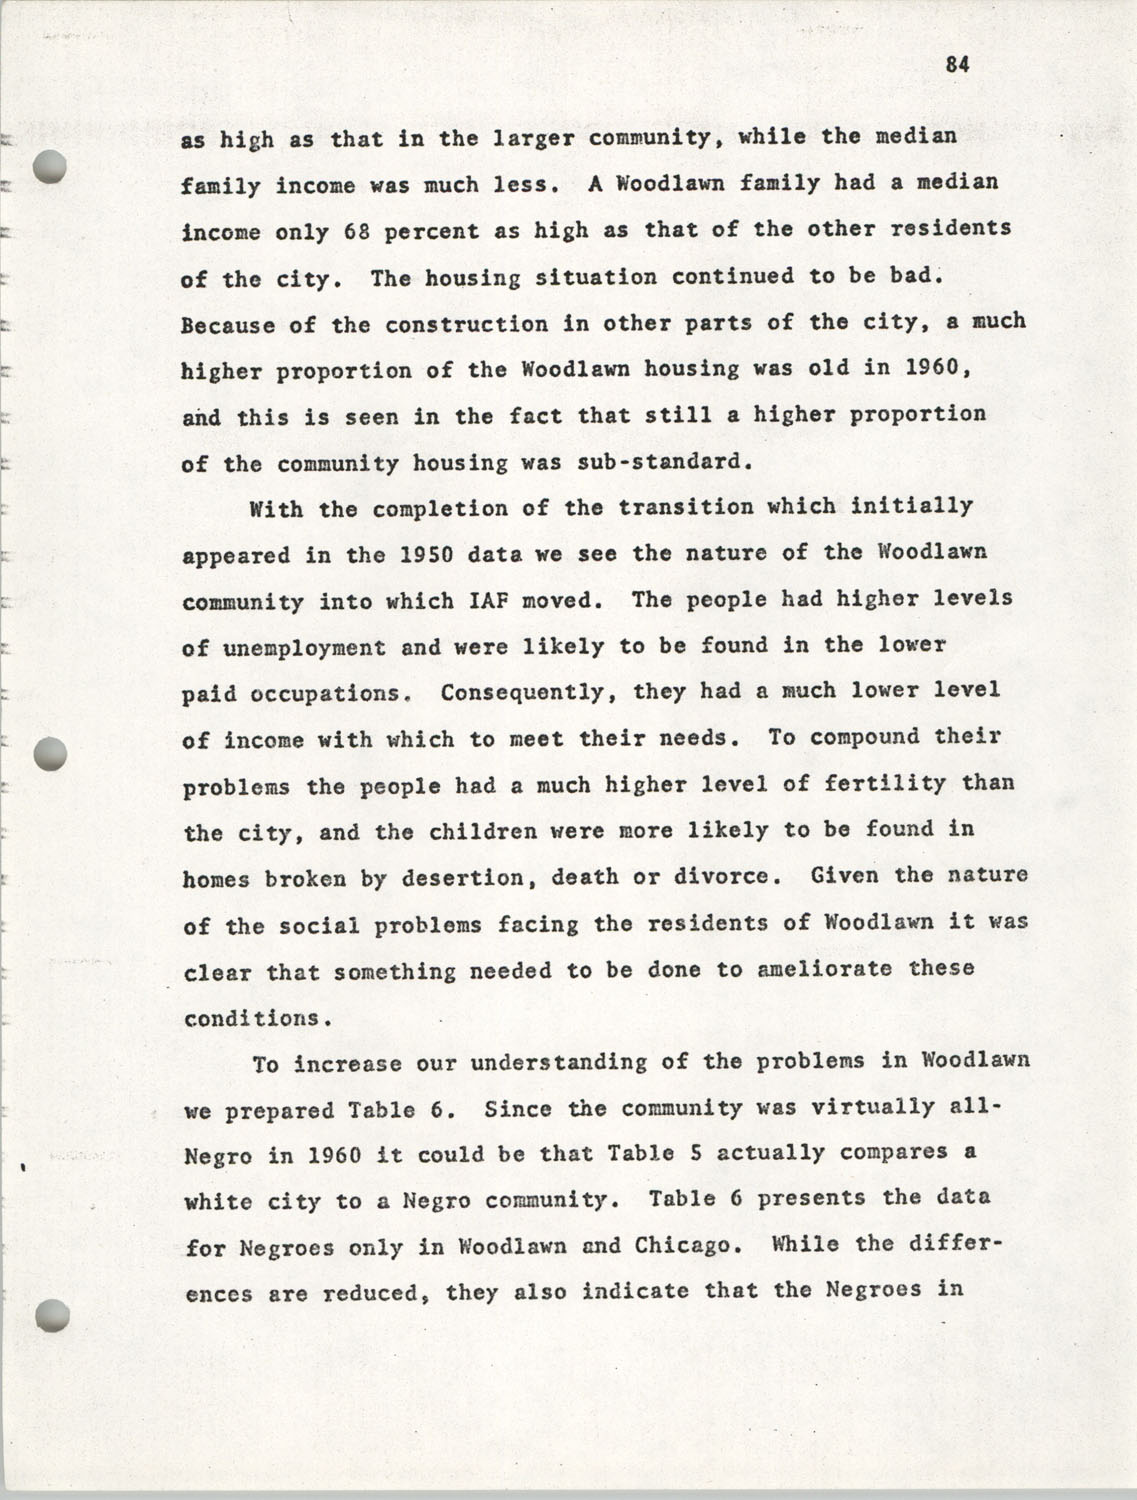 Citizen Participation. Democracy and Social Change, December 1, 1969, Page 84